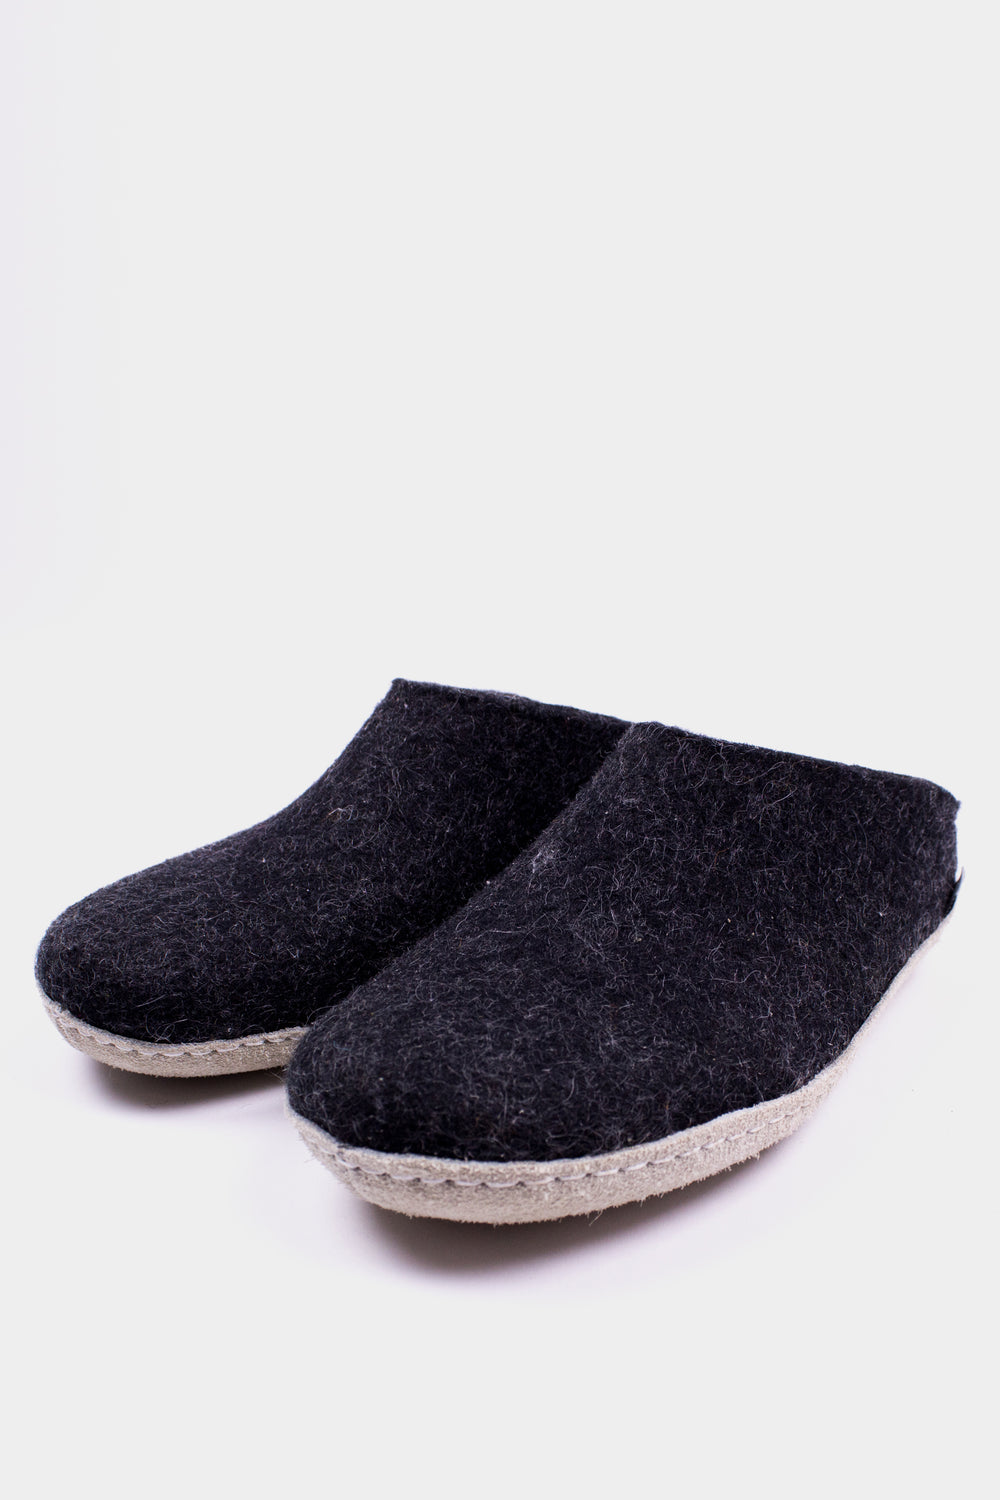 Charcoal Slippers